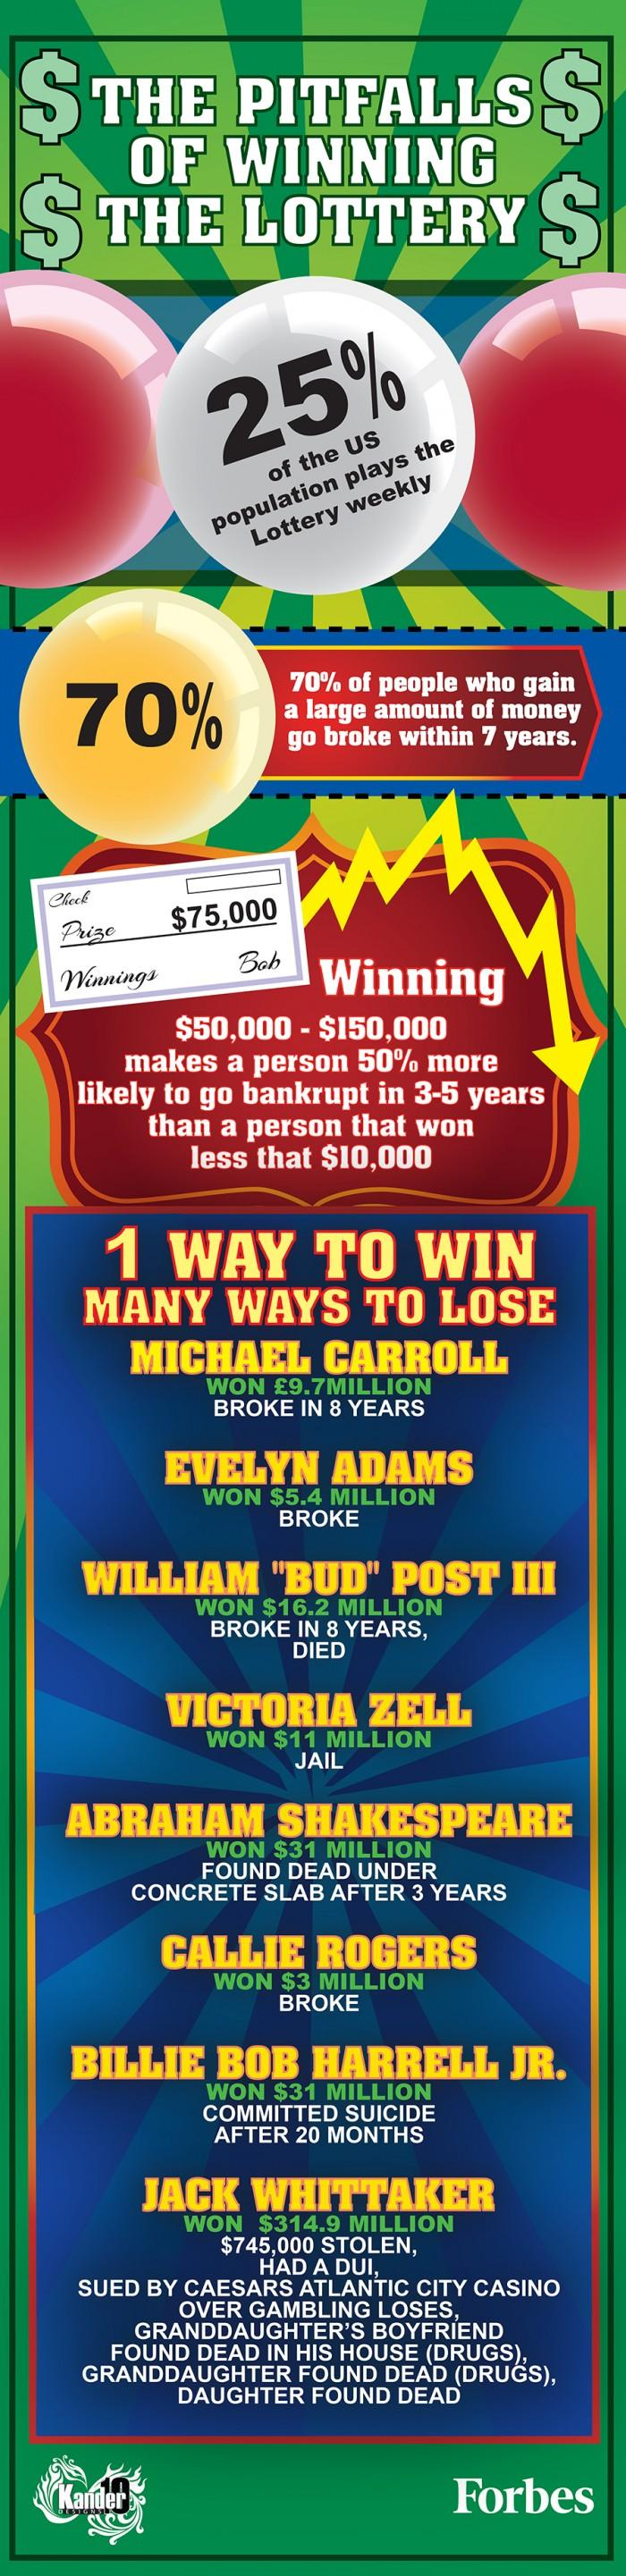 The Pitfalls Of Winning The Lottery